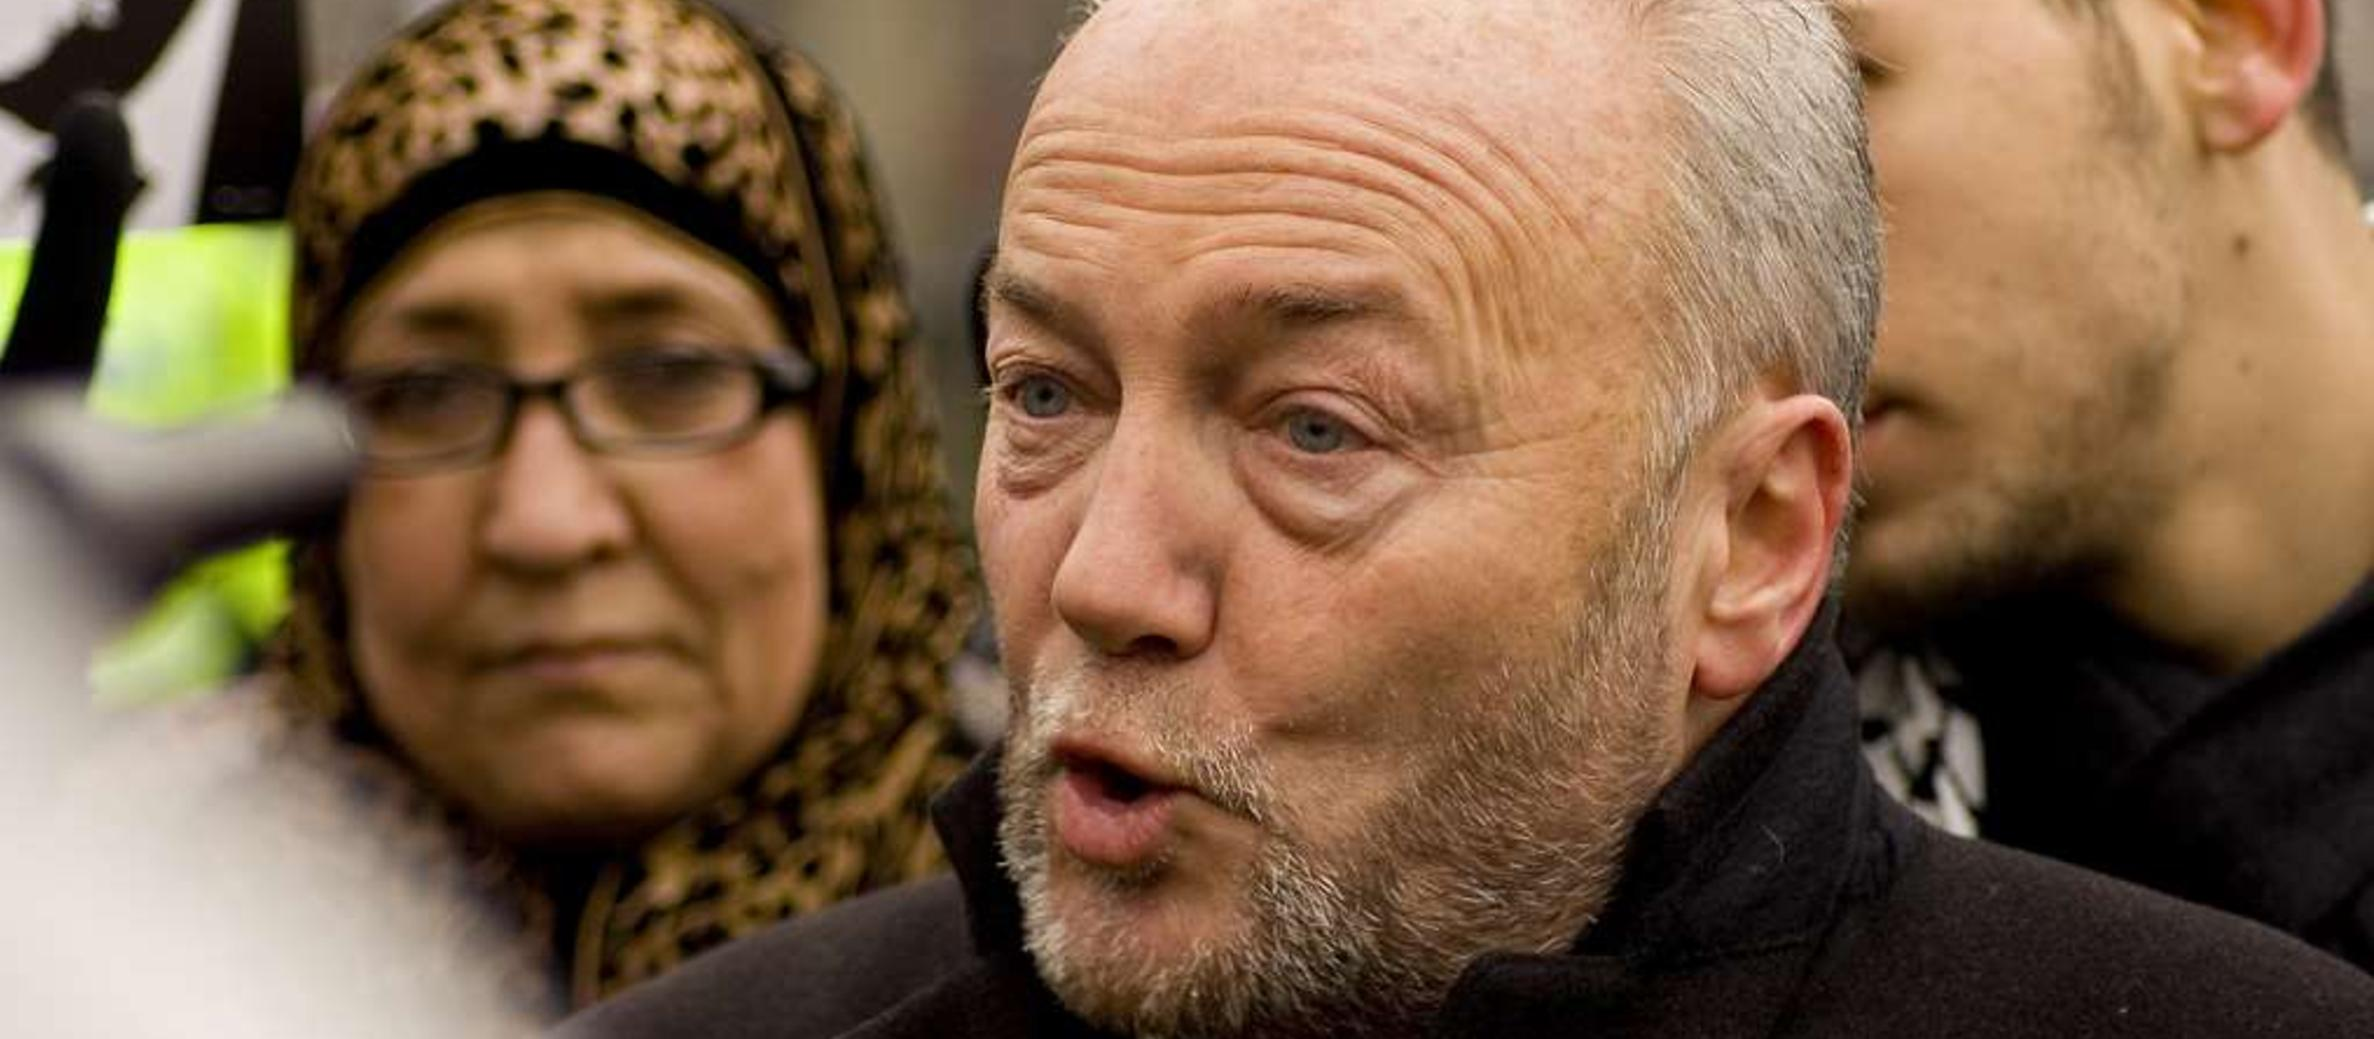 UK: Anti-Israel politician Galloway loses seat in UK vote